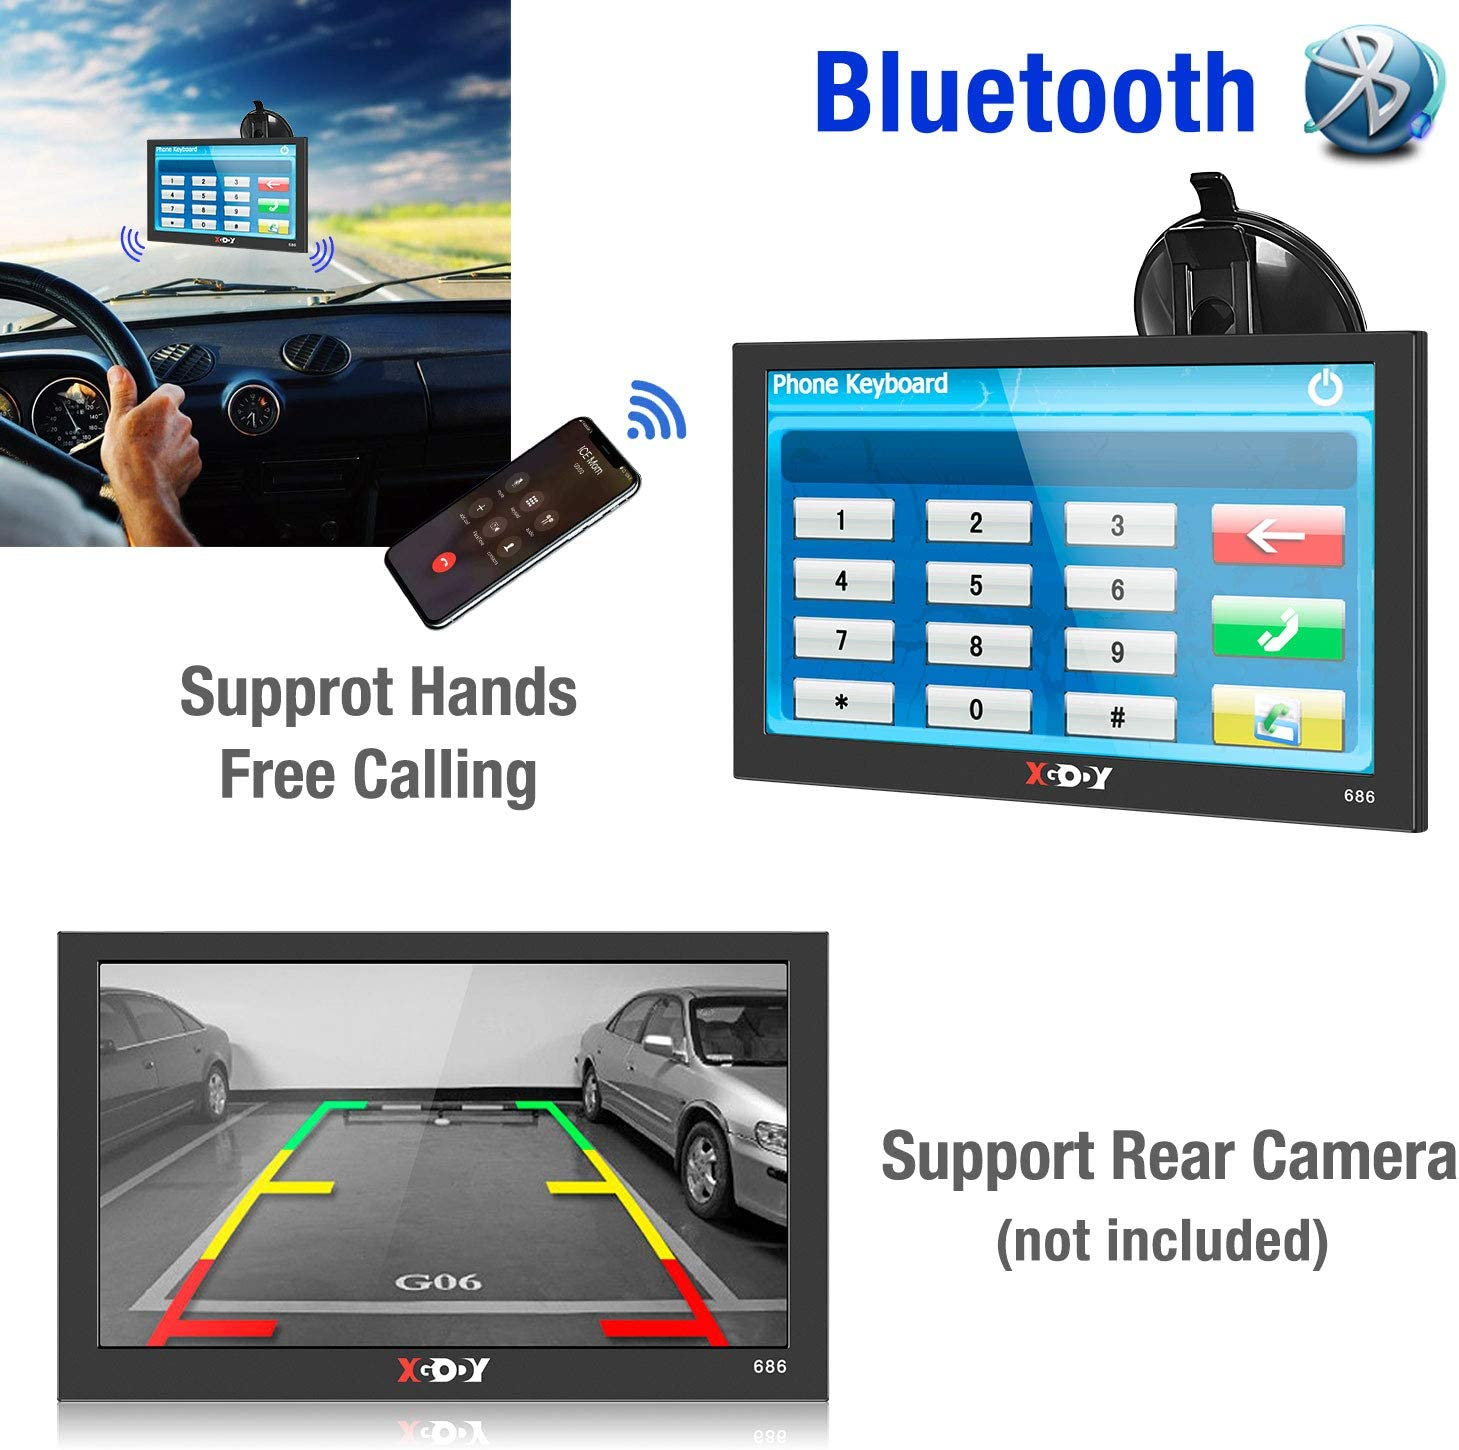 9 Inch Touch Screen Car GPS Navigation System with Bluetooth 8GB Satellite Trucker GPS Devices with Free Lifetime Maps Update Contains USA Canada Mexico Xgody GPS Navigation for Car Truck Vehicle